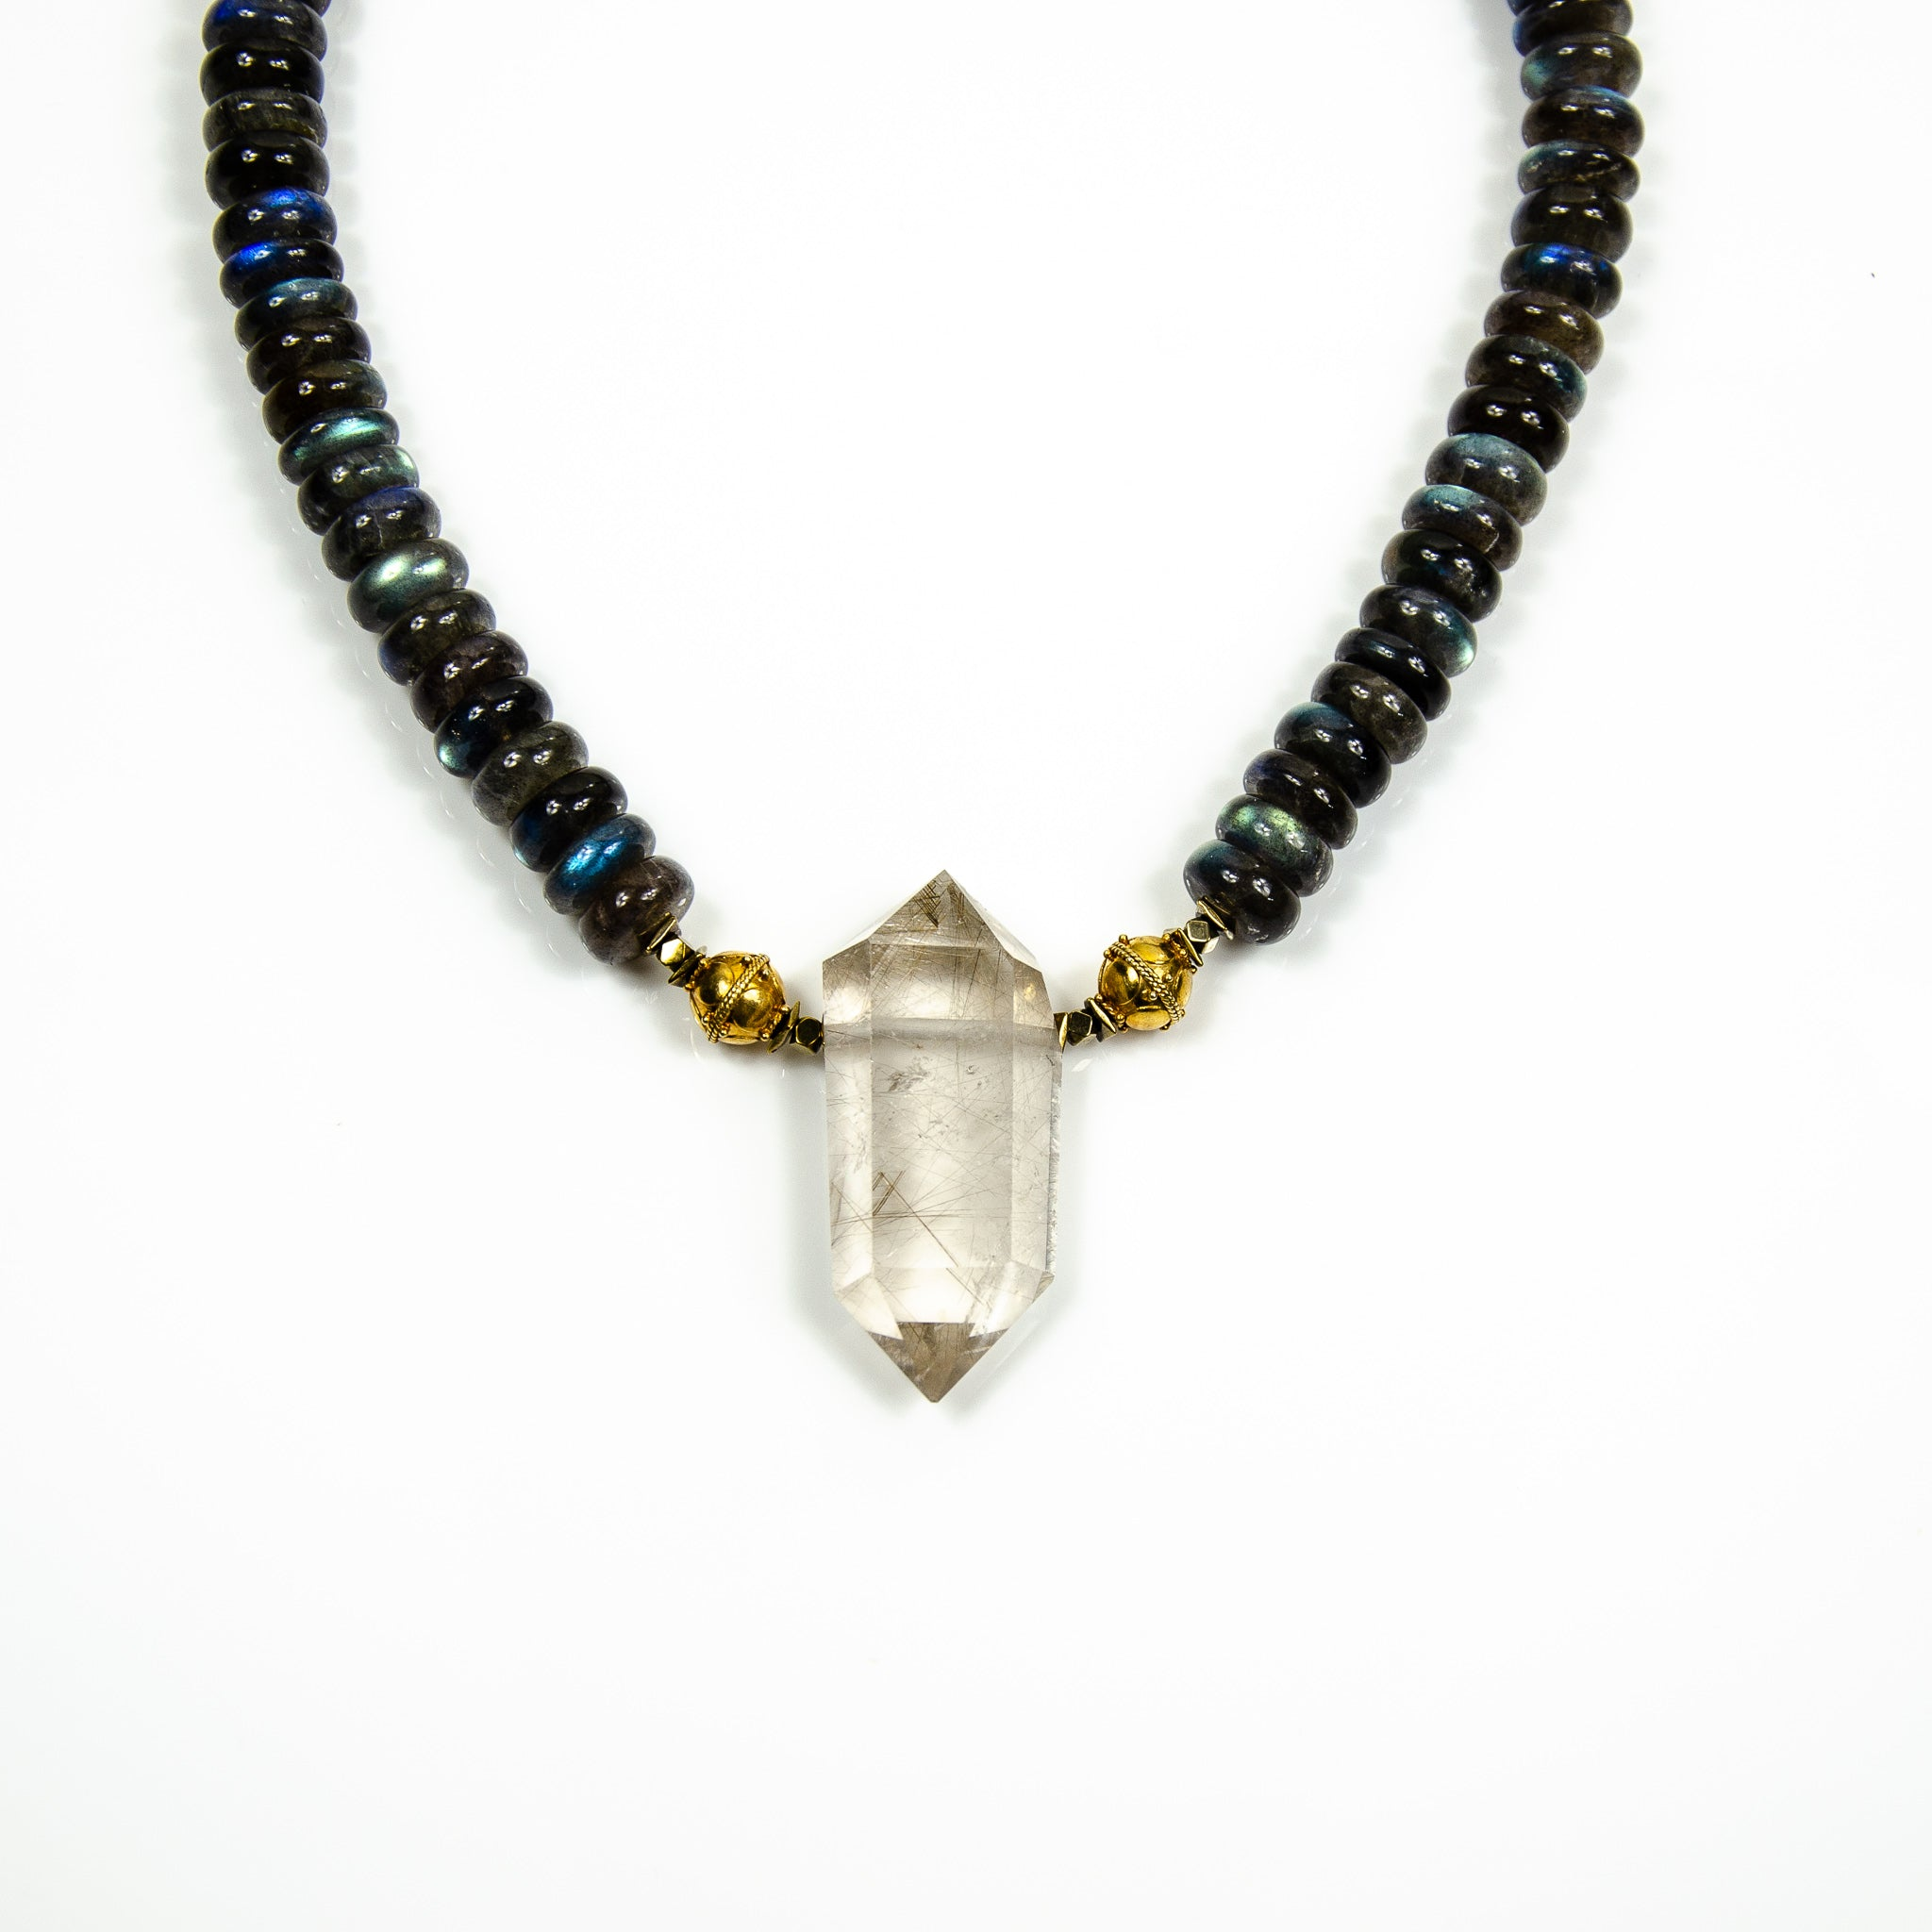 Union - Rutilated smokey quartz with labradorite